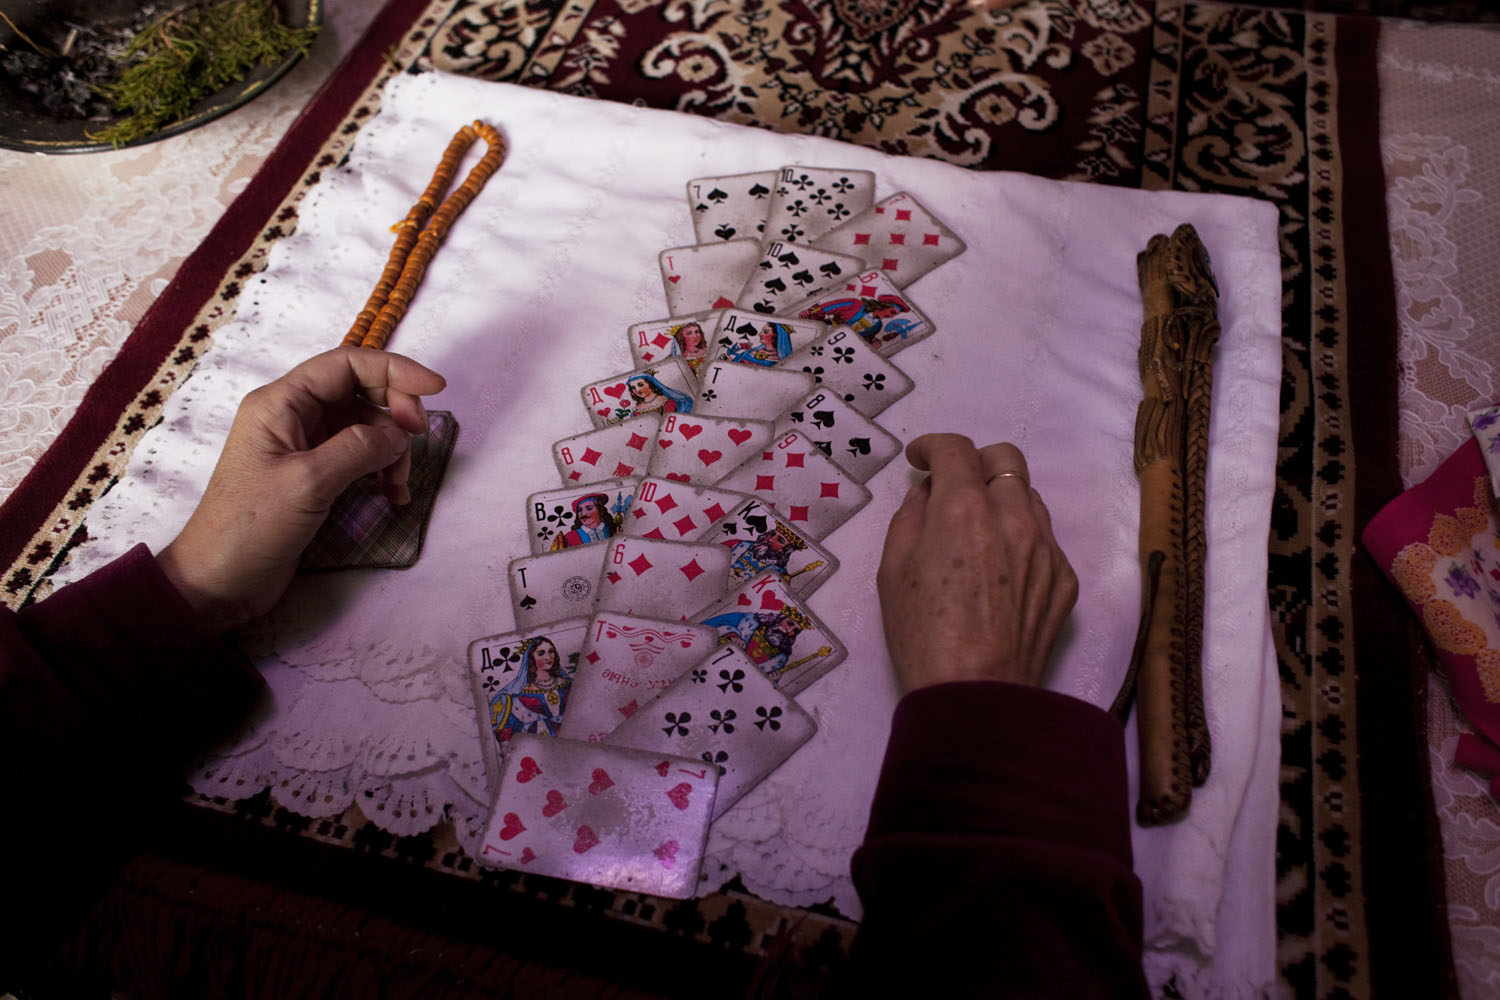 The shaman Burul lays out playing cards on her kitchen table to study her client's life.                               Talas, Kyrgyzstan